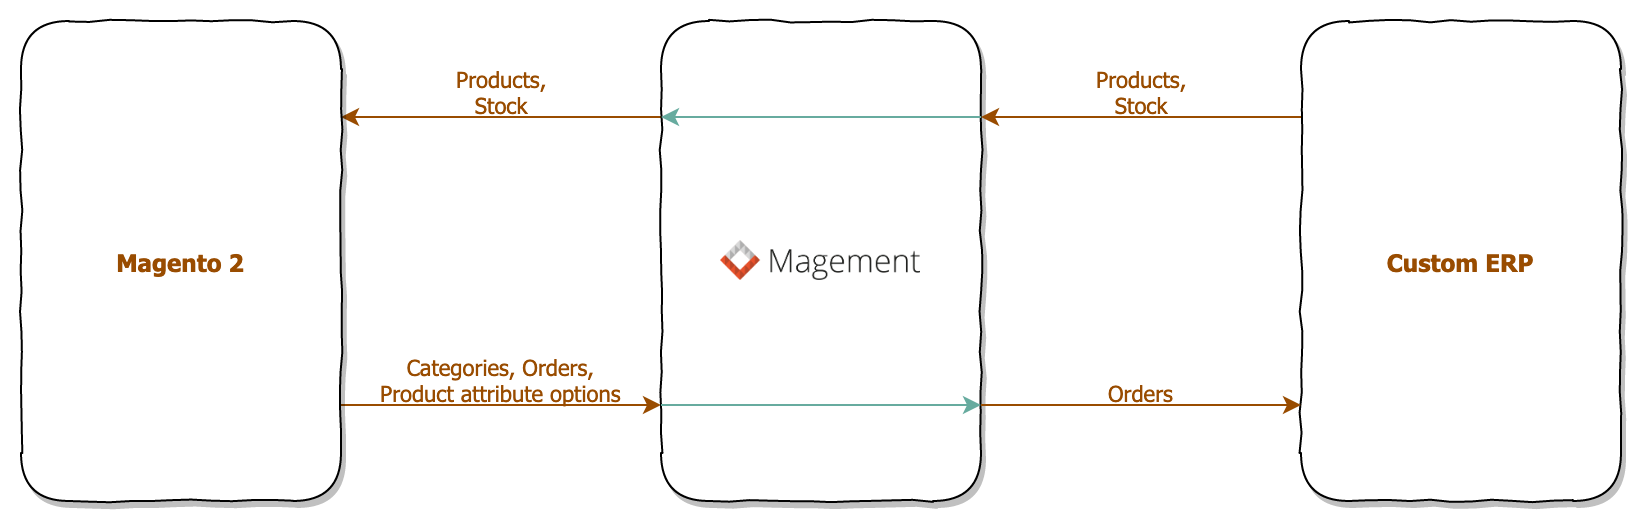 magement-case-study-migrating-magento-1-to-magento-2.png